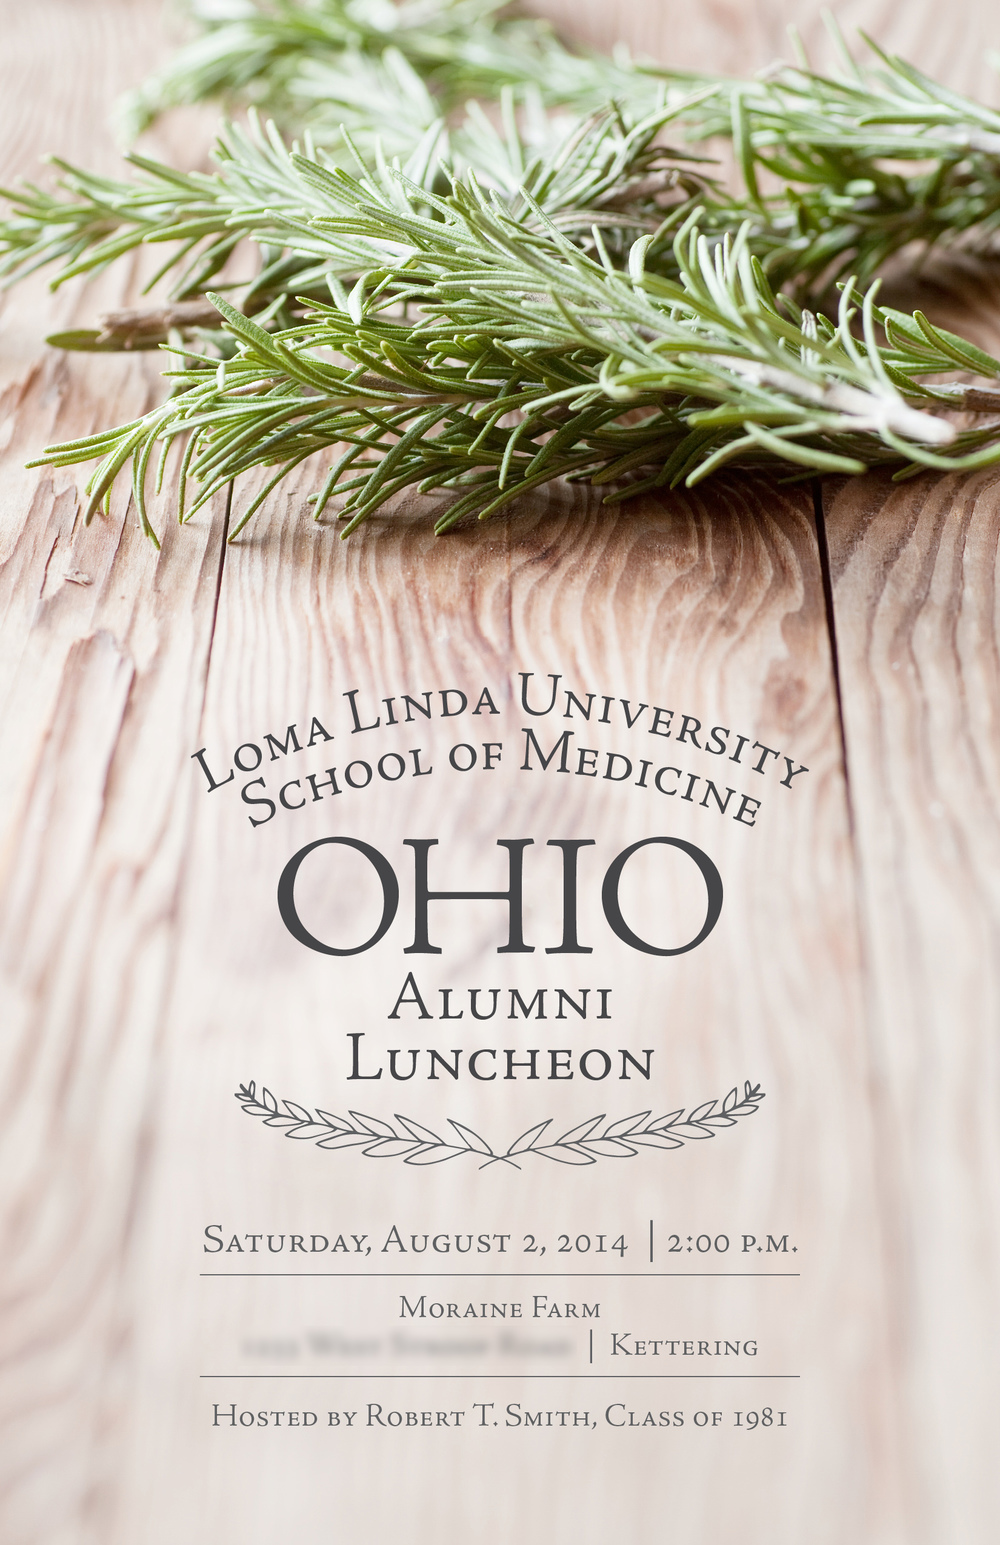 Ohio Alumni Event Invitation Kristina Benfield Design